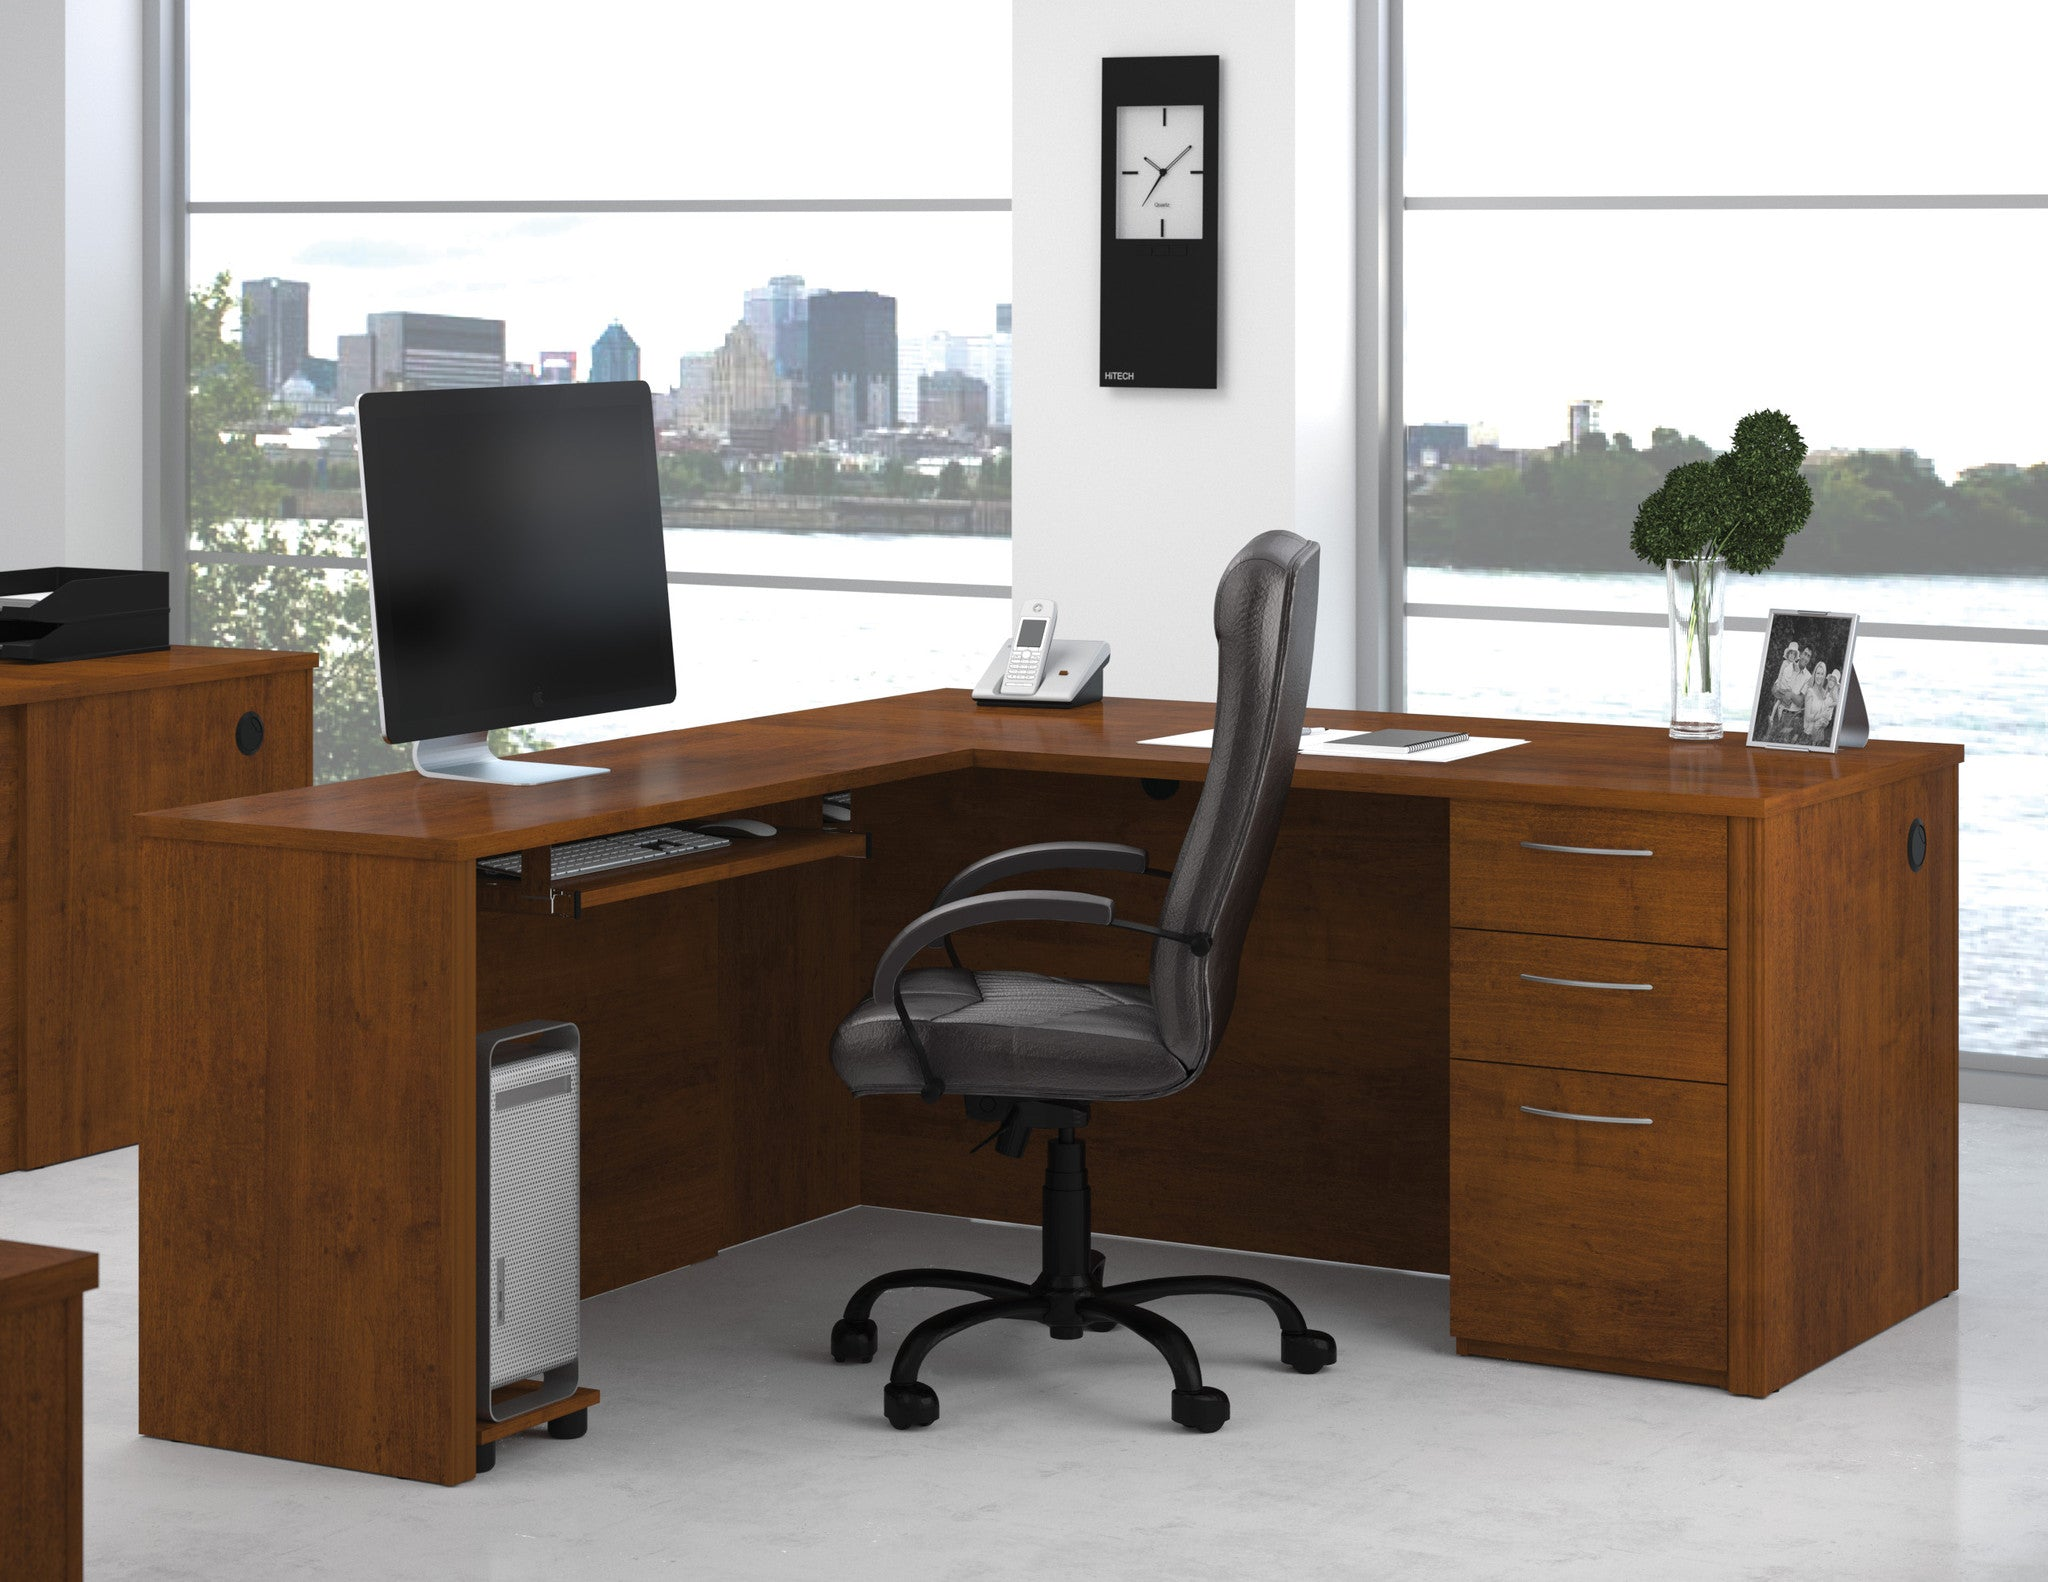 Embassy Modern Corner Desk In Tuscany Brown Or Cappuccino